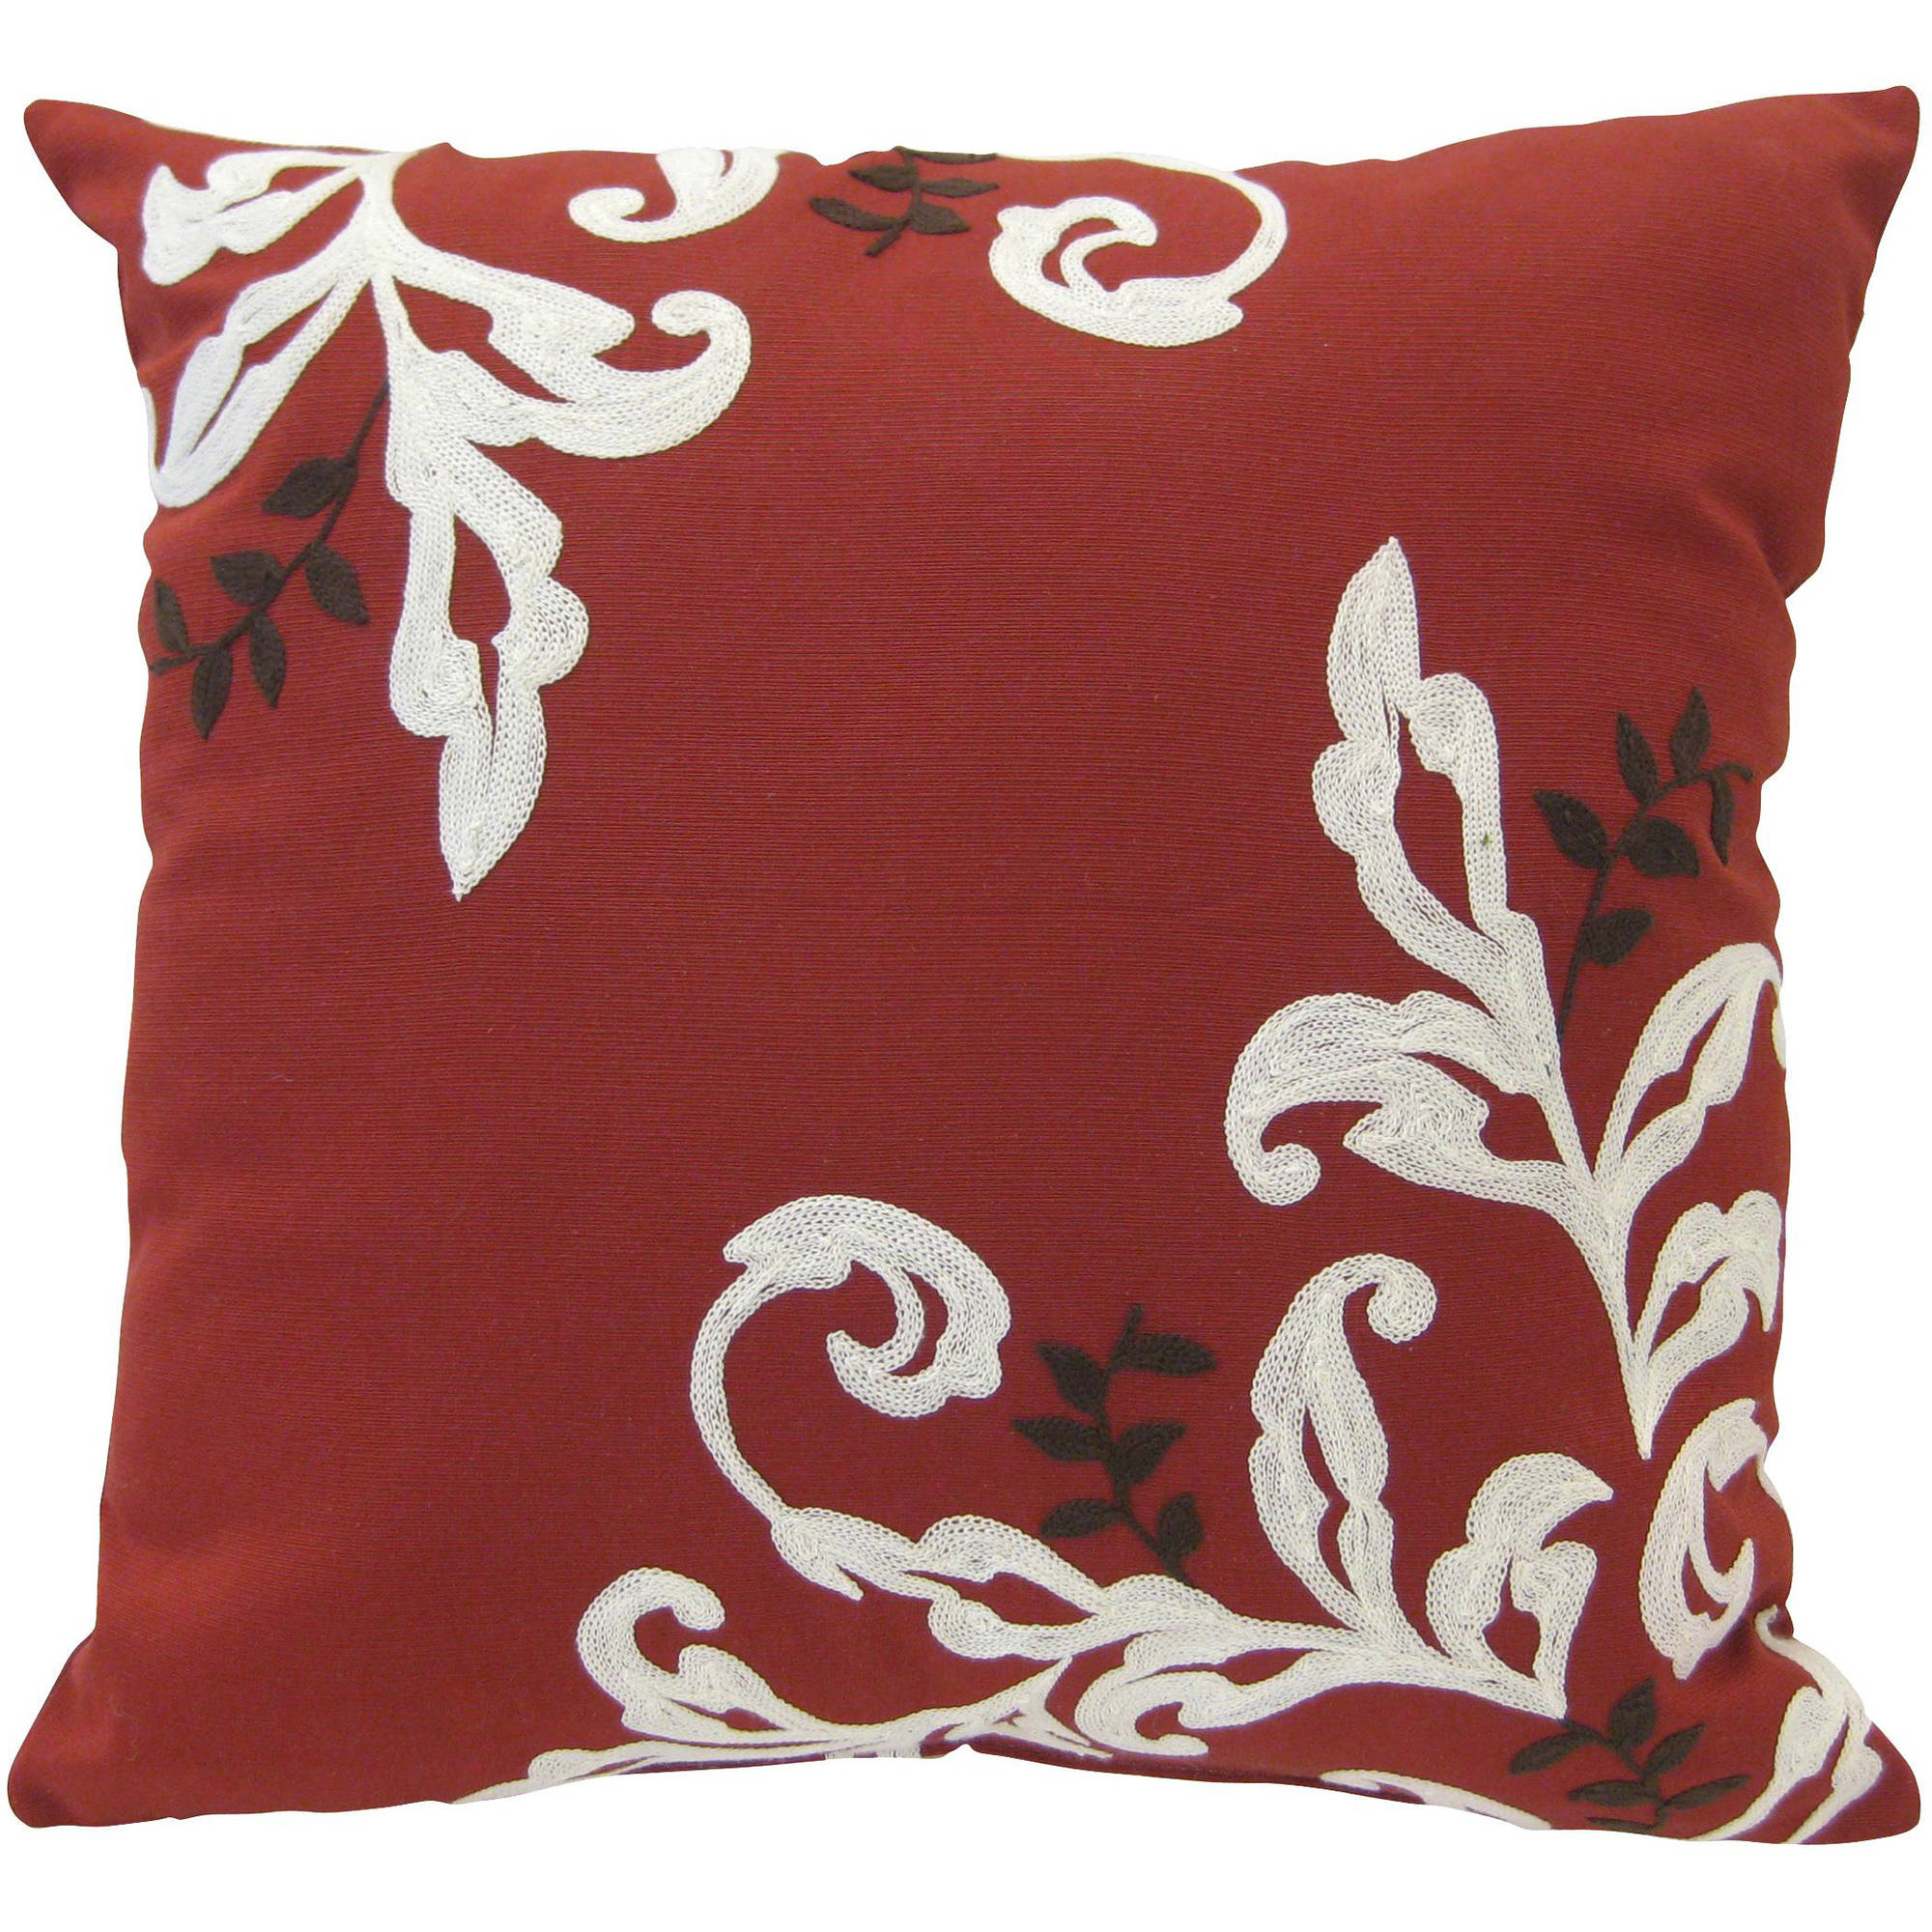 Better Homes and Gardens Citrus Scroll 18''x18'' Decorative Pillow, Red